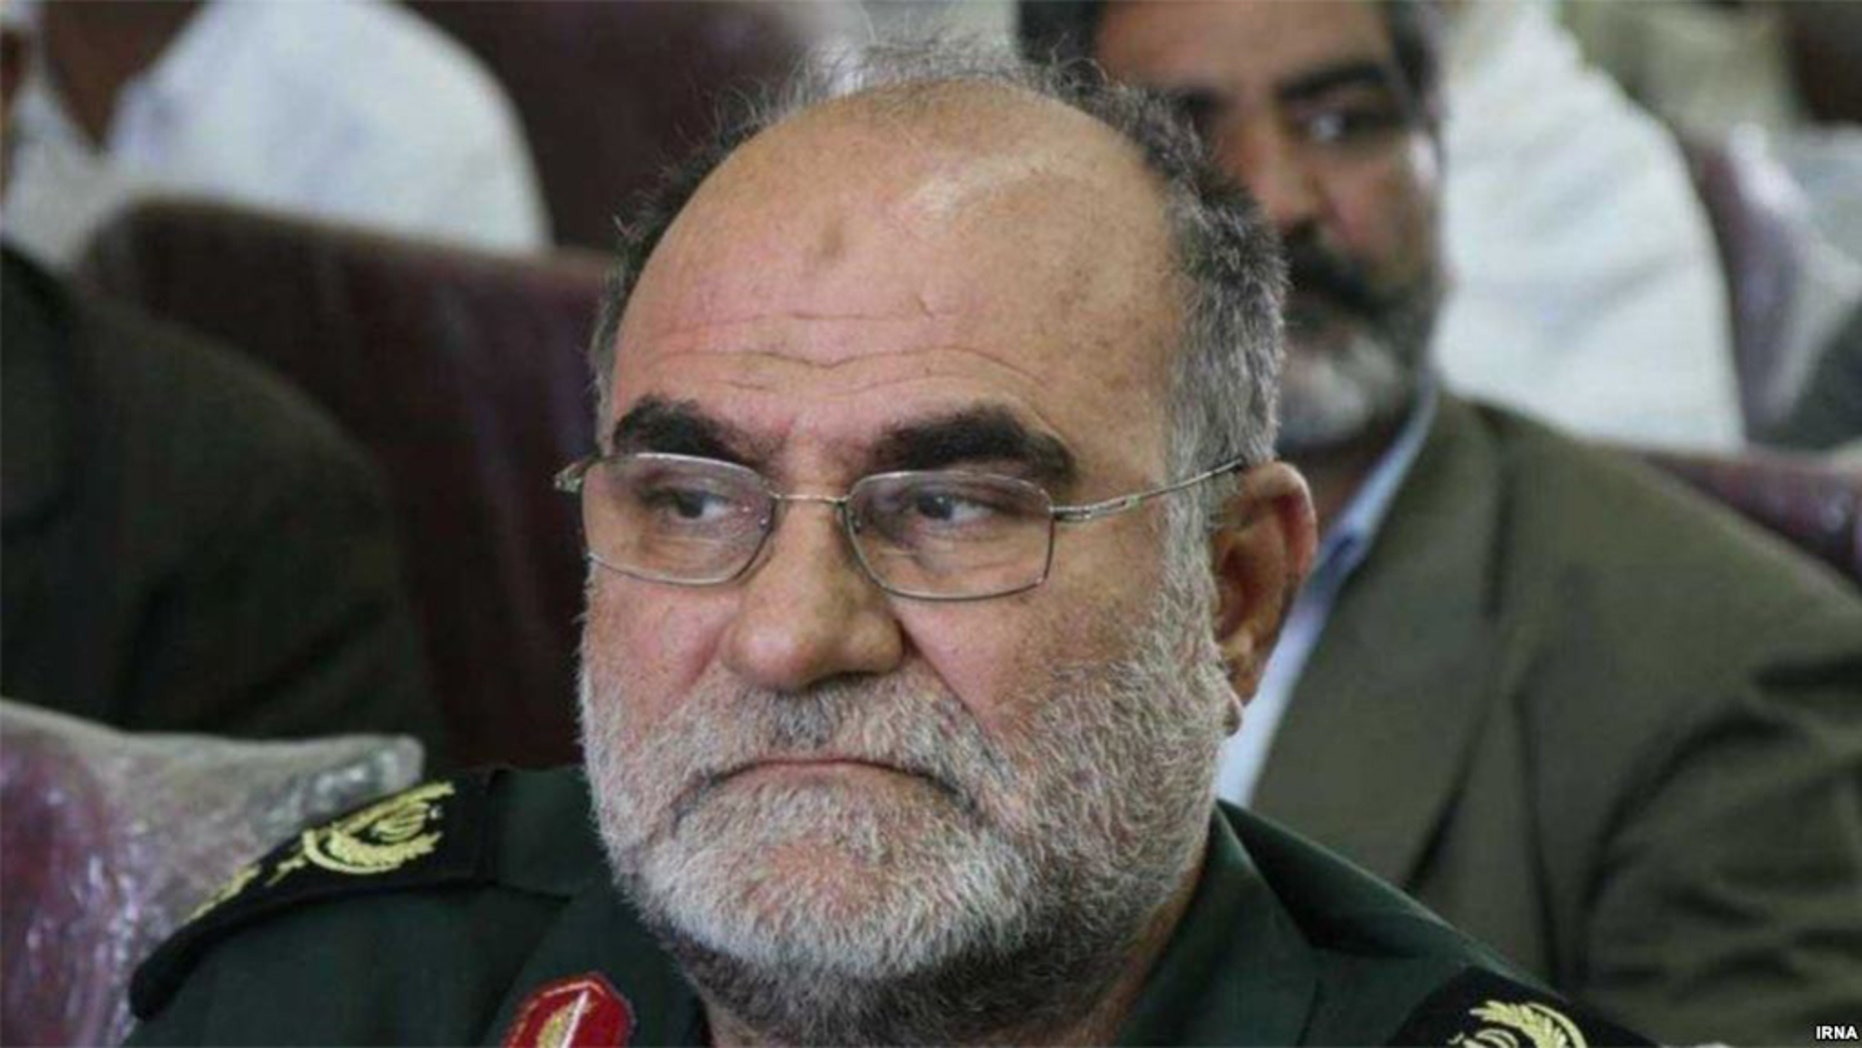 Iranian Gen. Ghodratollah Mansourishot himself in the head by accident, according to a report.